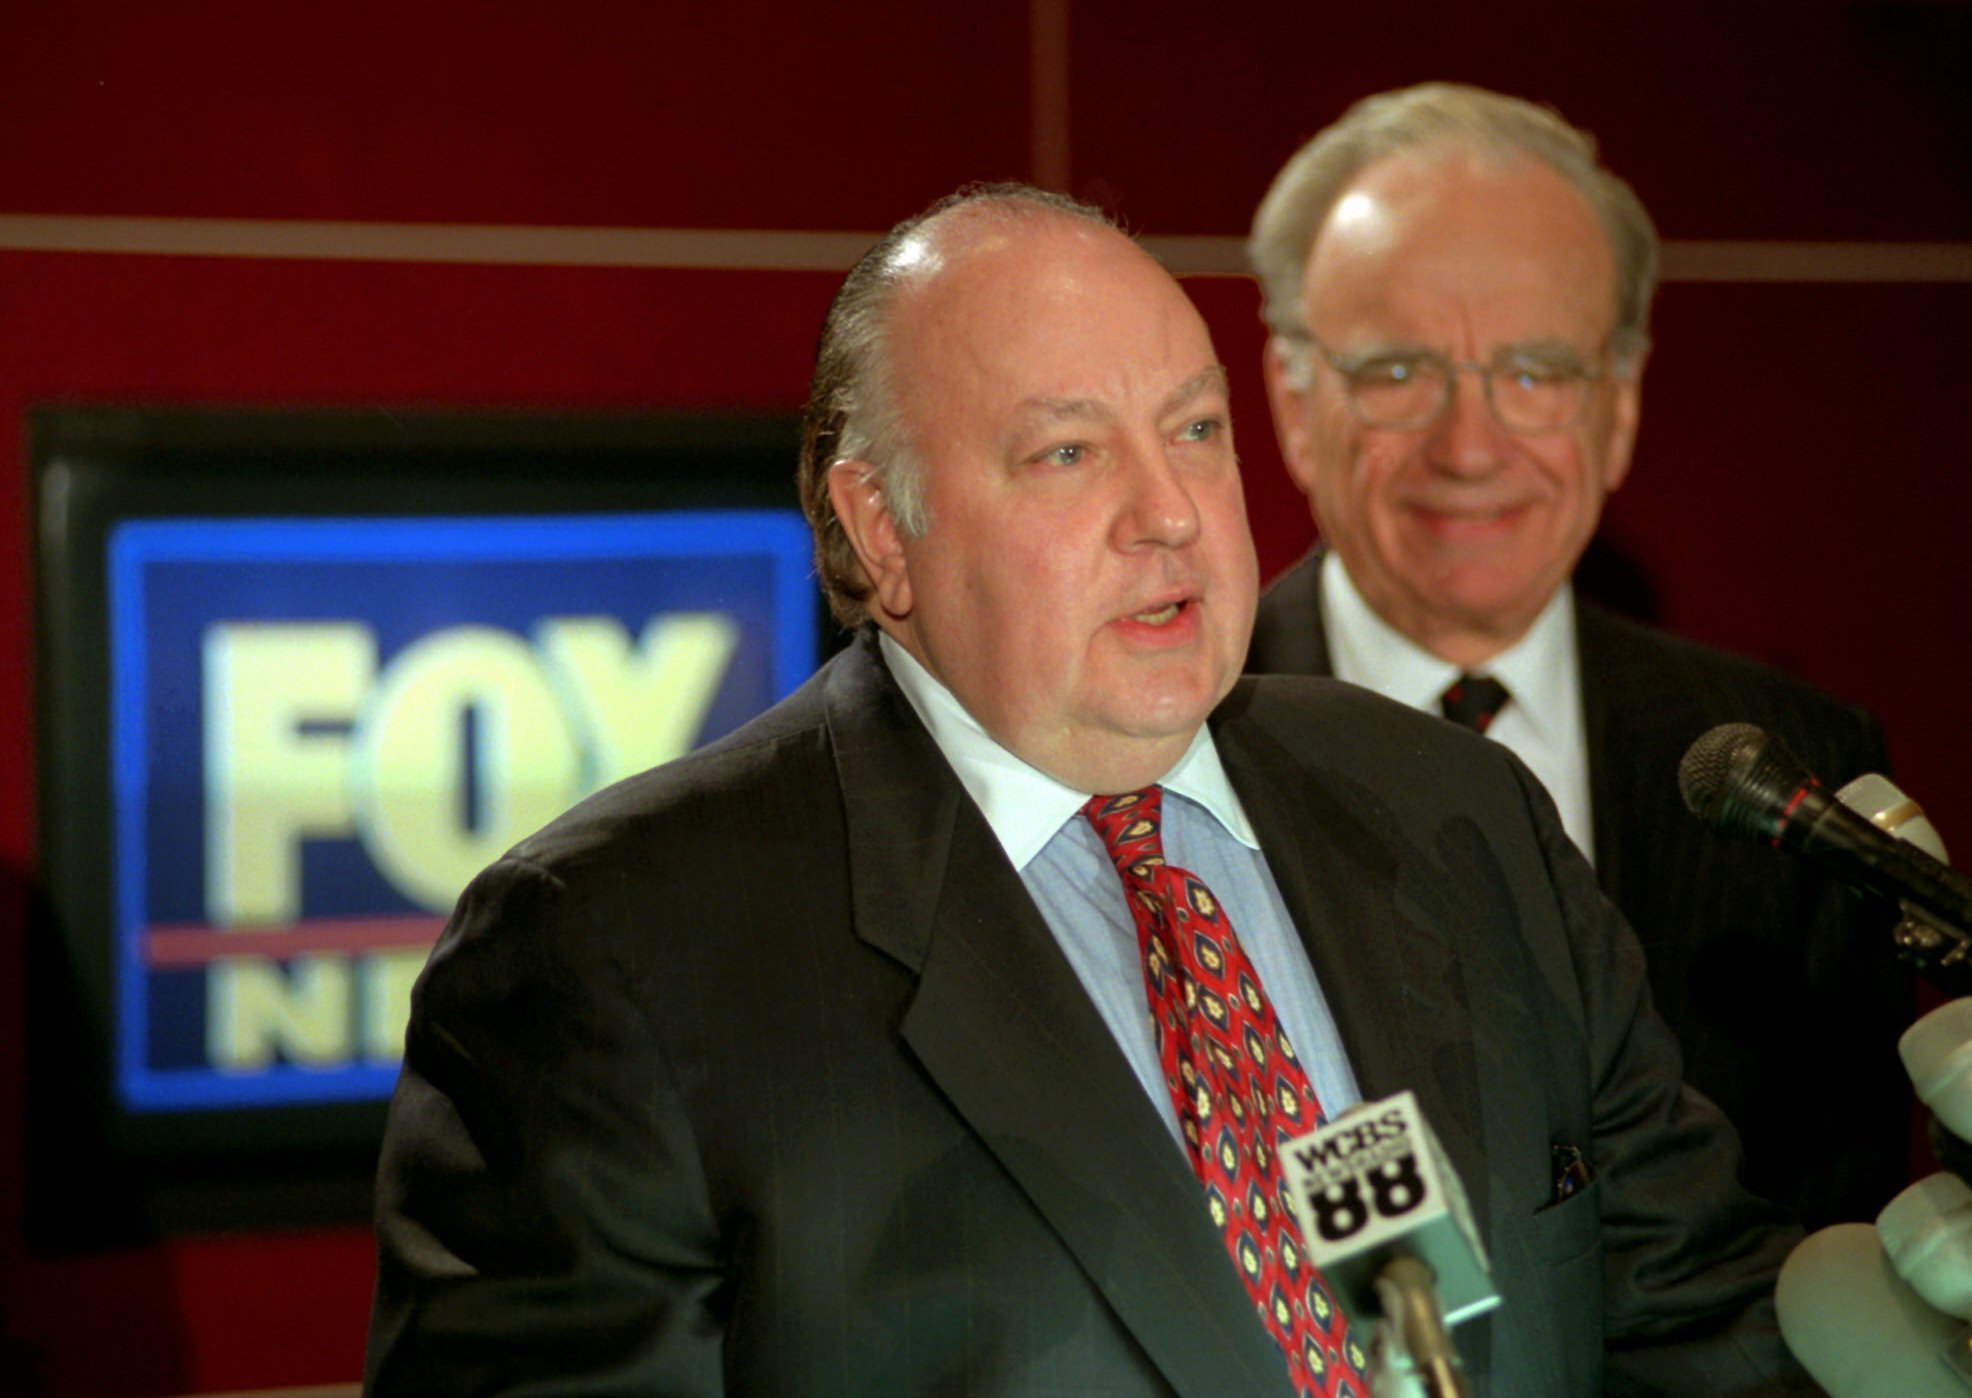 Roger Ailes, left, speaks at a news conference as Rupert Murdoch looks on after it was announced that Ailes will be chairman and CEO of Fox News. 21st Century Fox said, that Ailes is resigning immediately. Murdoch will assume the role of Chairman and acting CEO of Fox News Channel and Fox Business NetworkTV Fox Ailes, New York, USA